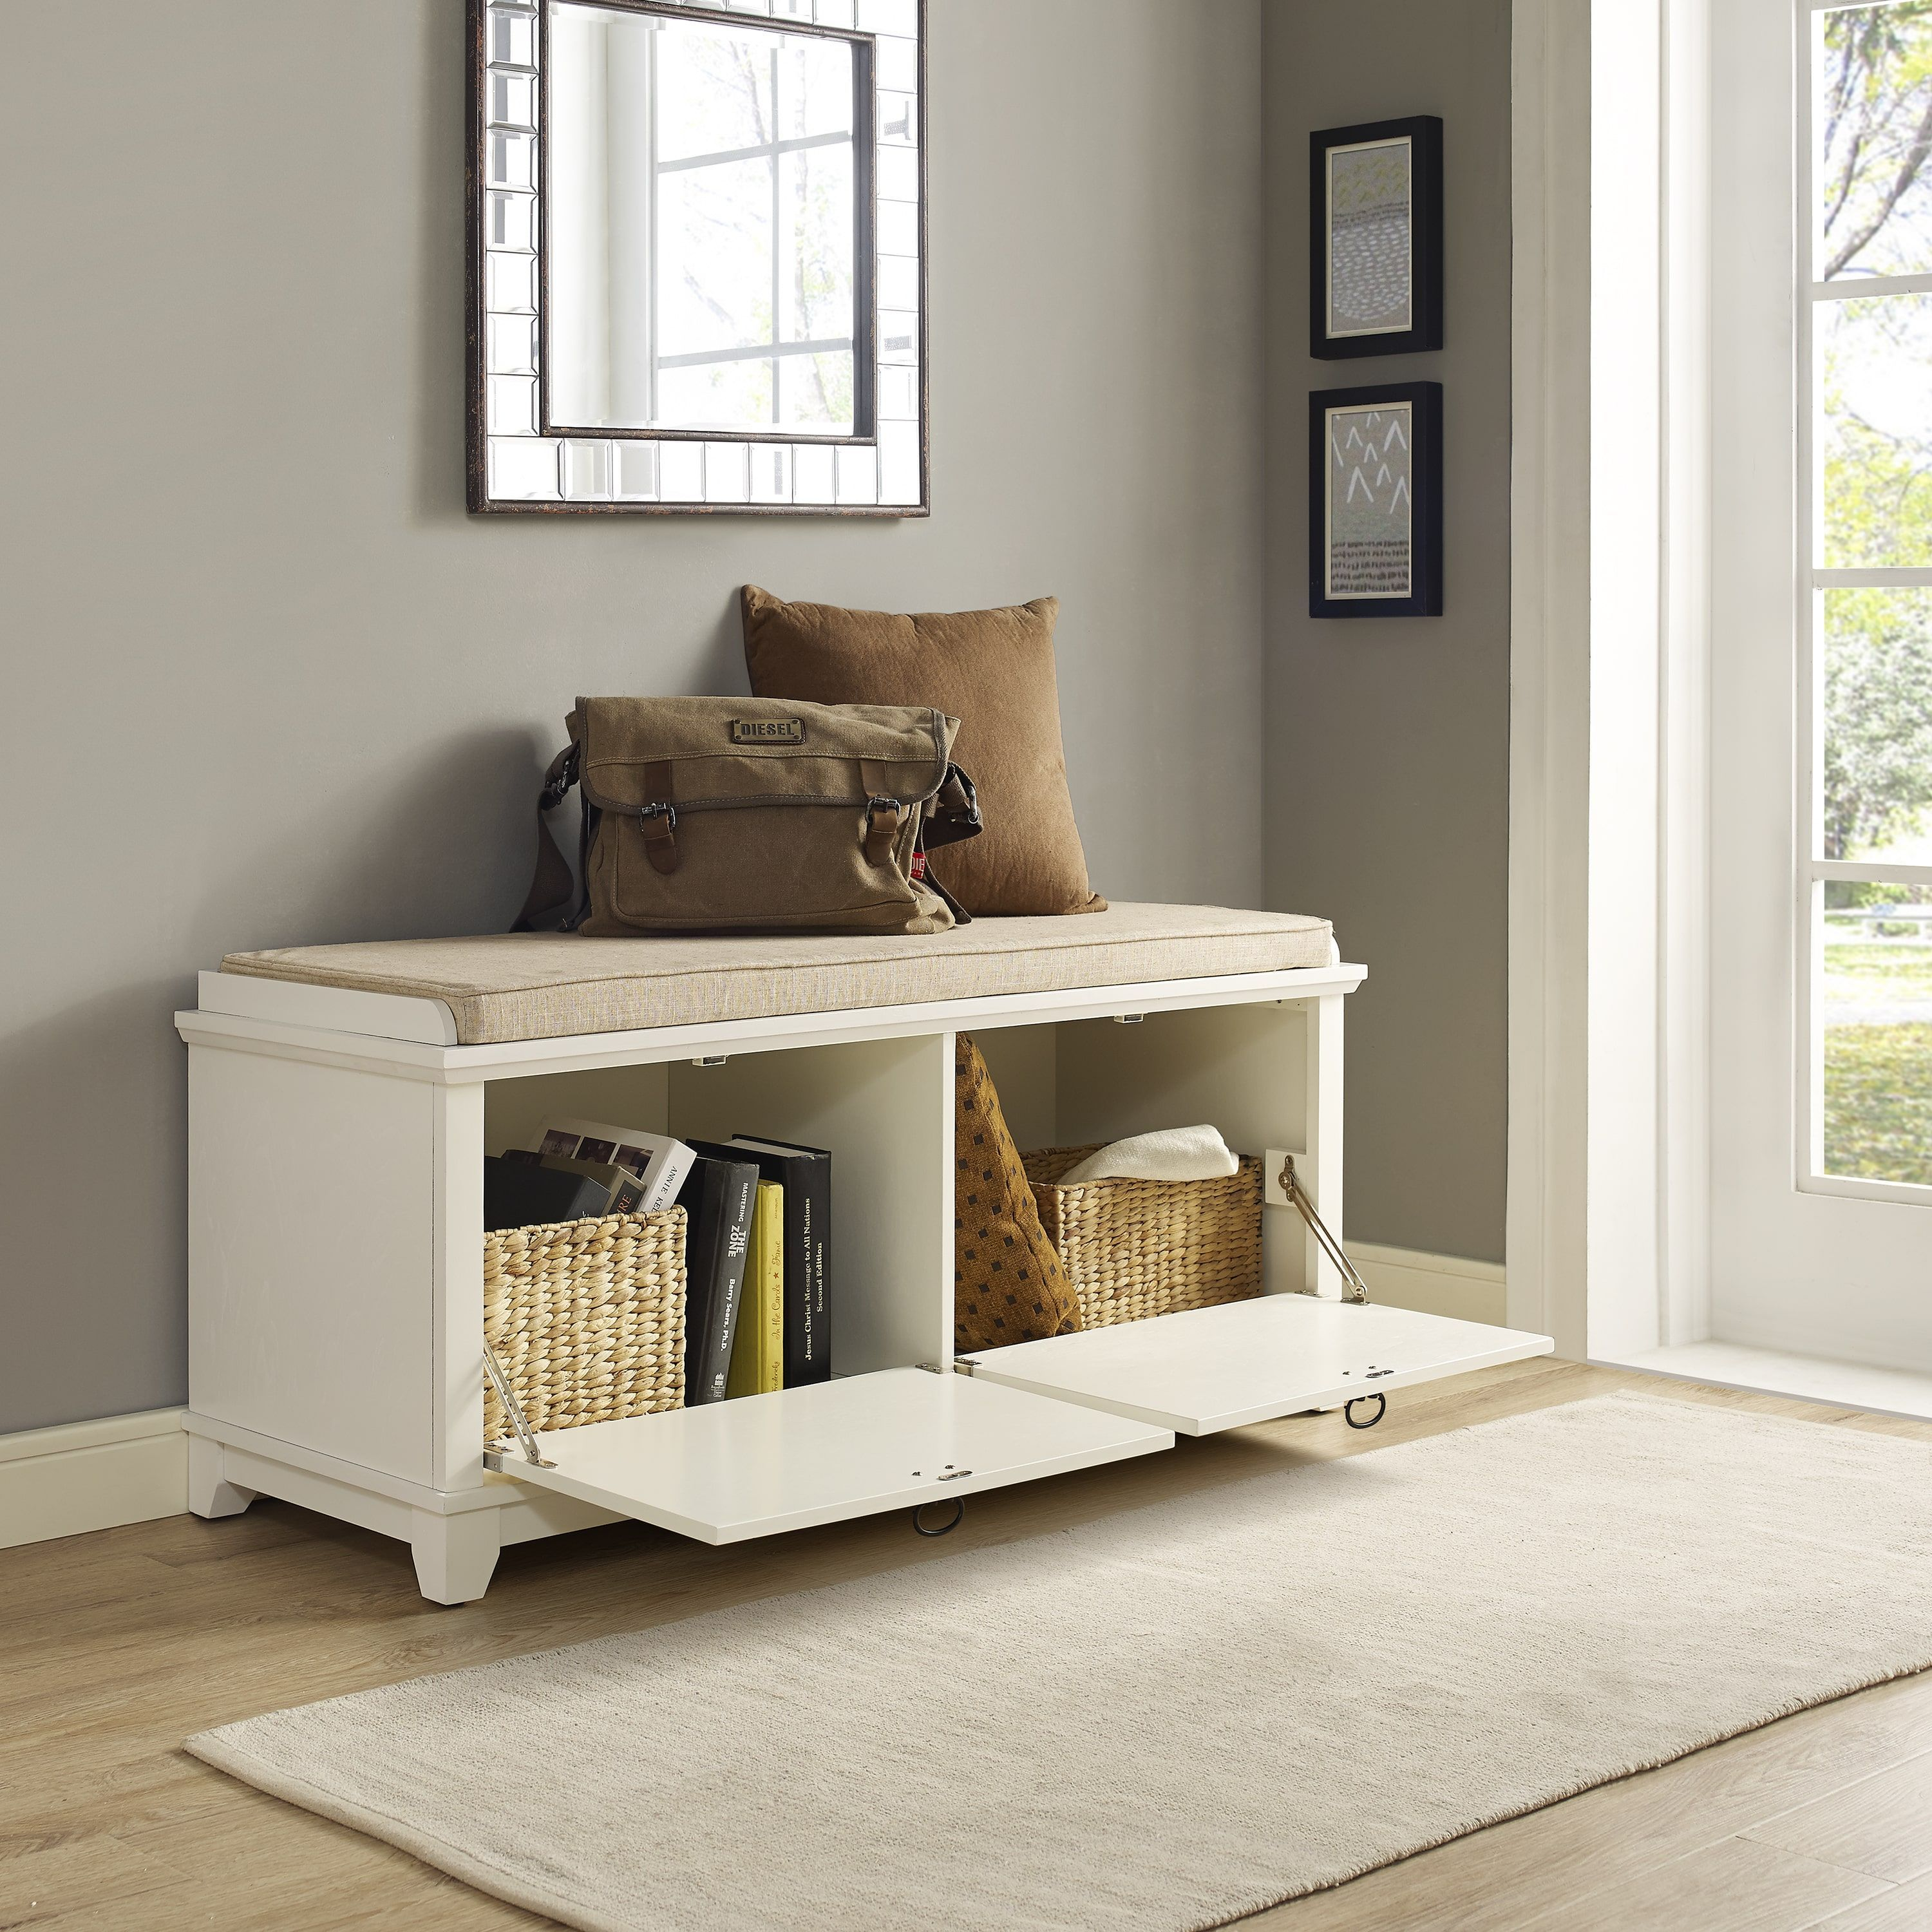 Remarkable Adler White Entryway Bench Home Entryway Ideas Pdpeps Interior Chair Design Pdpepsorg